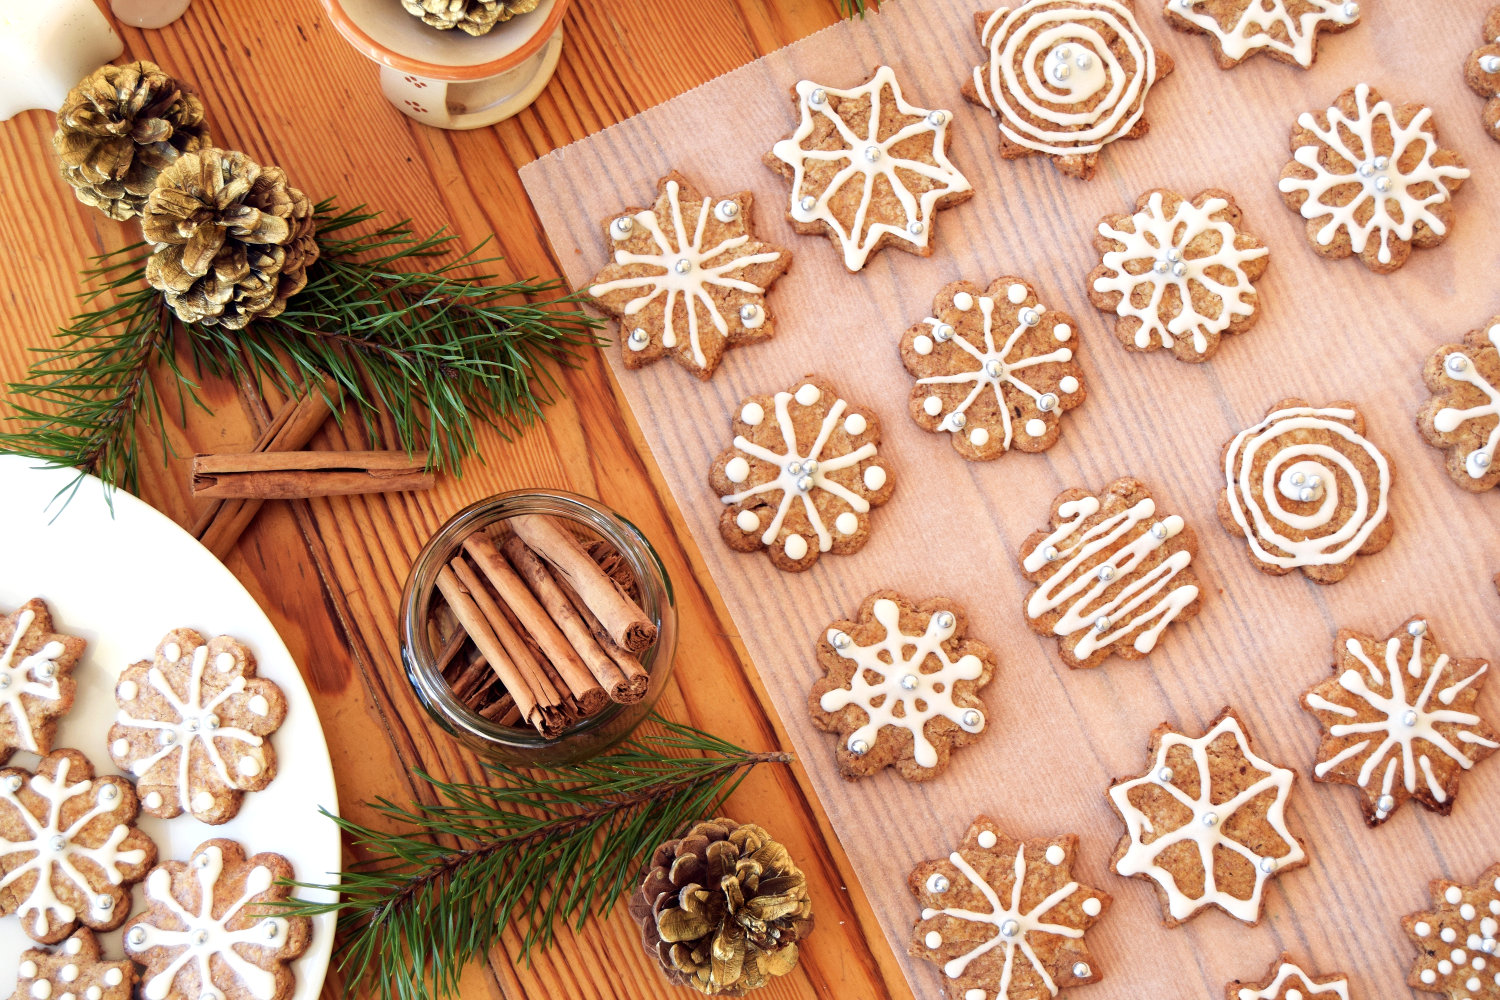 sugar_icing_decorating_cookies_gingerbread_christmas_9